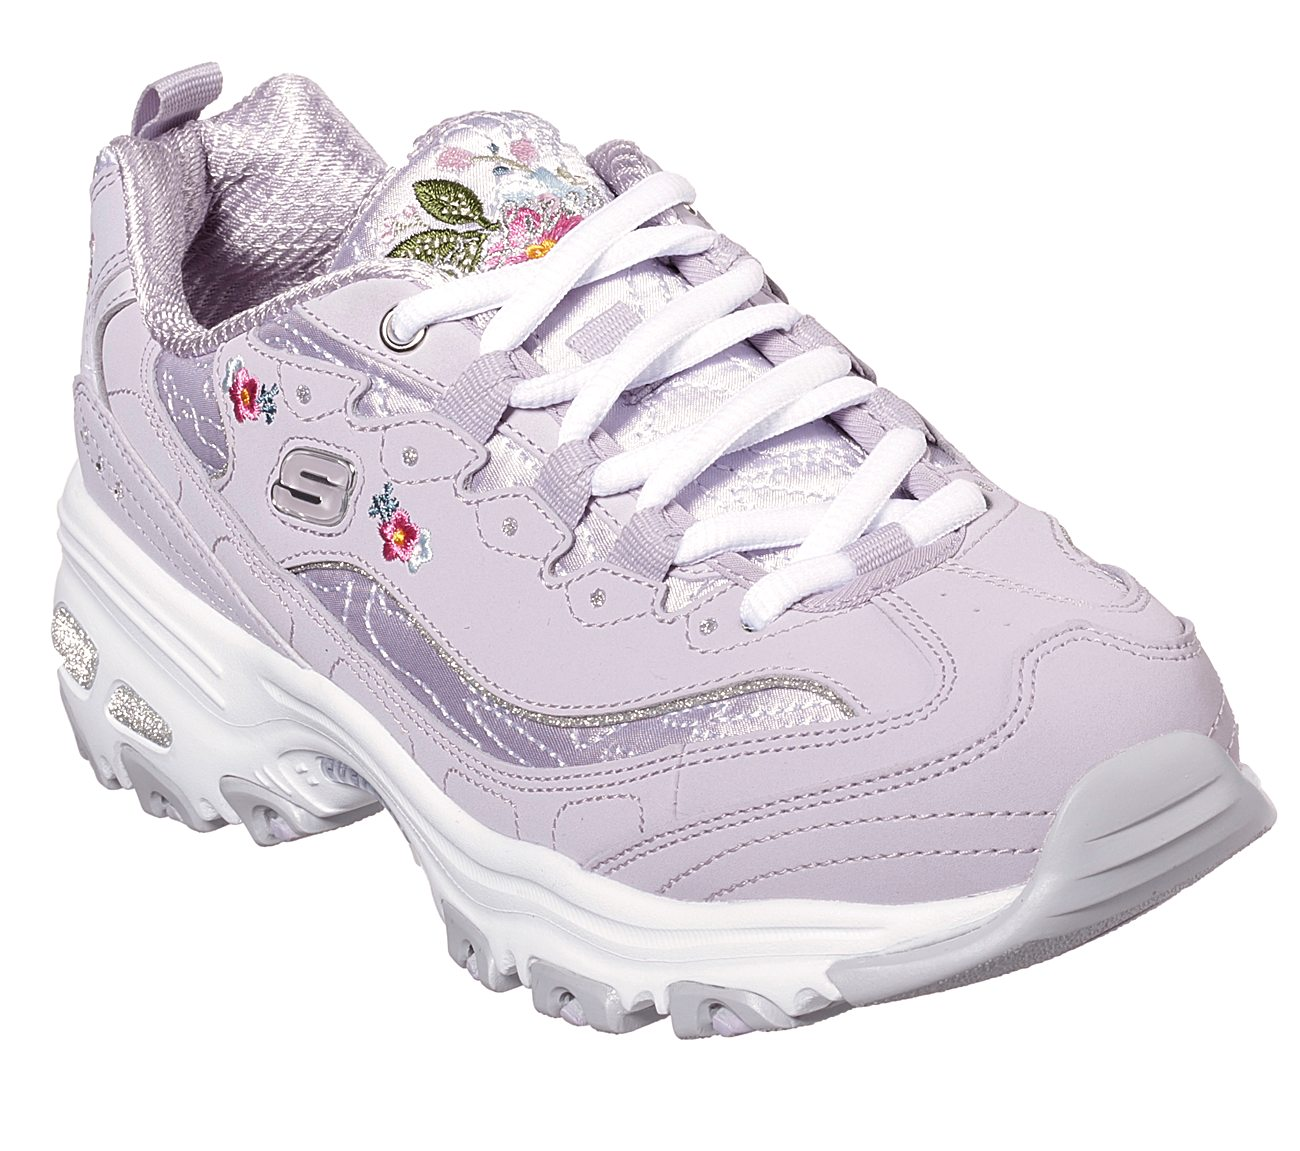 c03c3d10b96 Buy SKECHERS D Lites - Bright Blossoms D Lites Shoes only  70.00